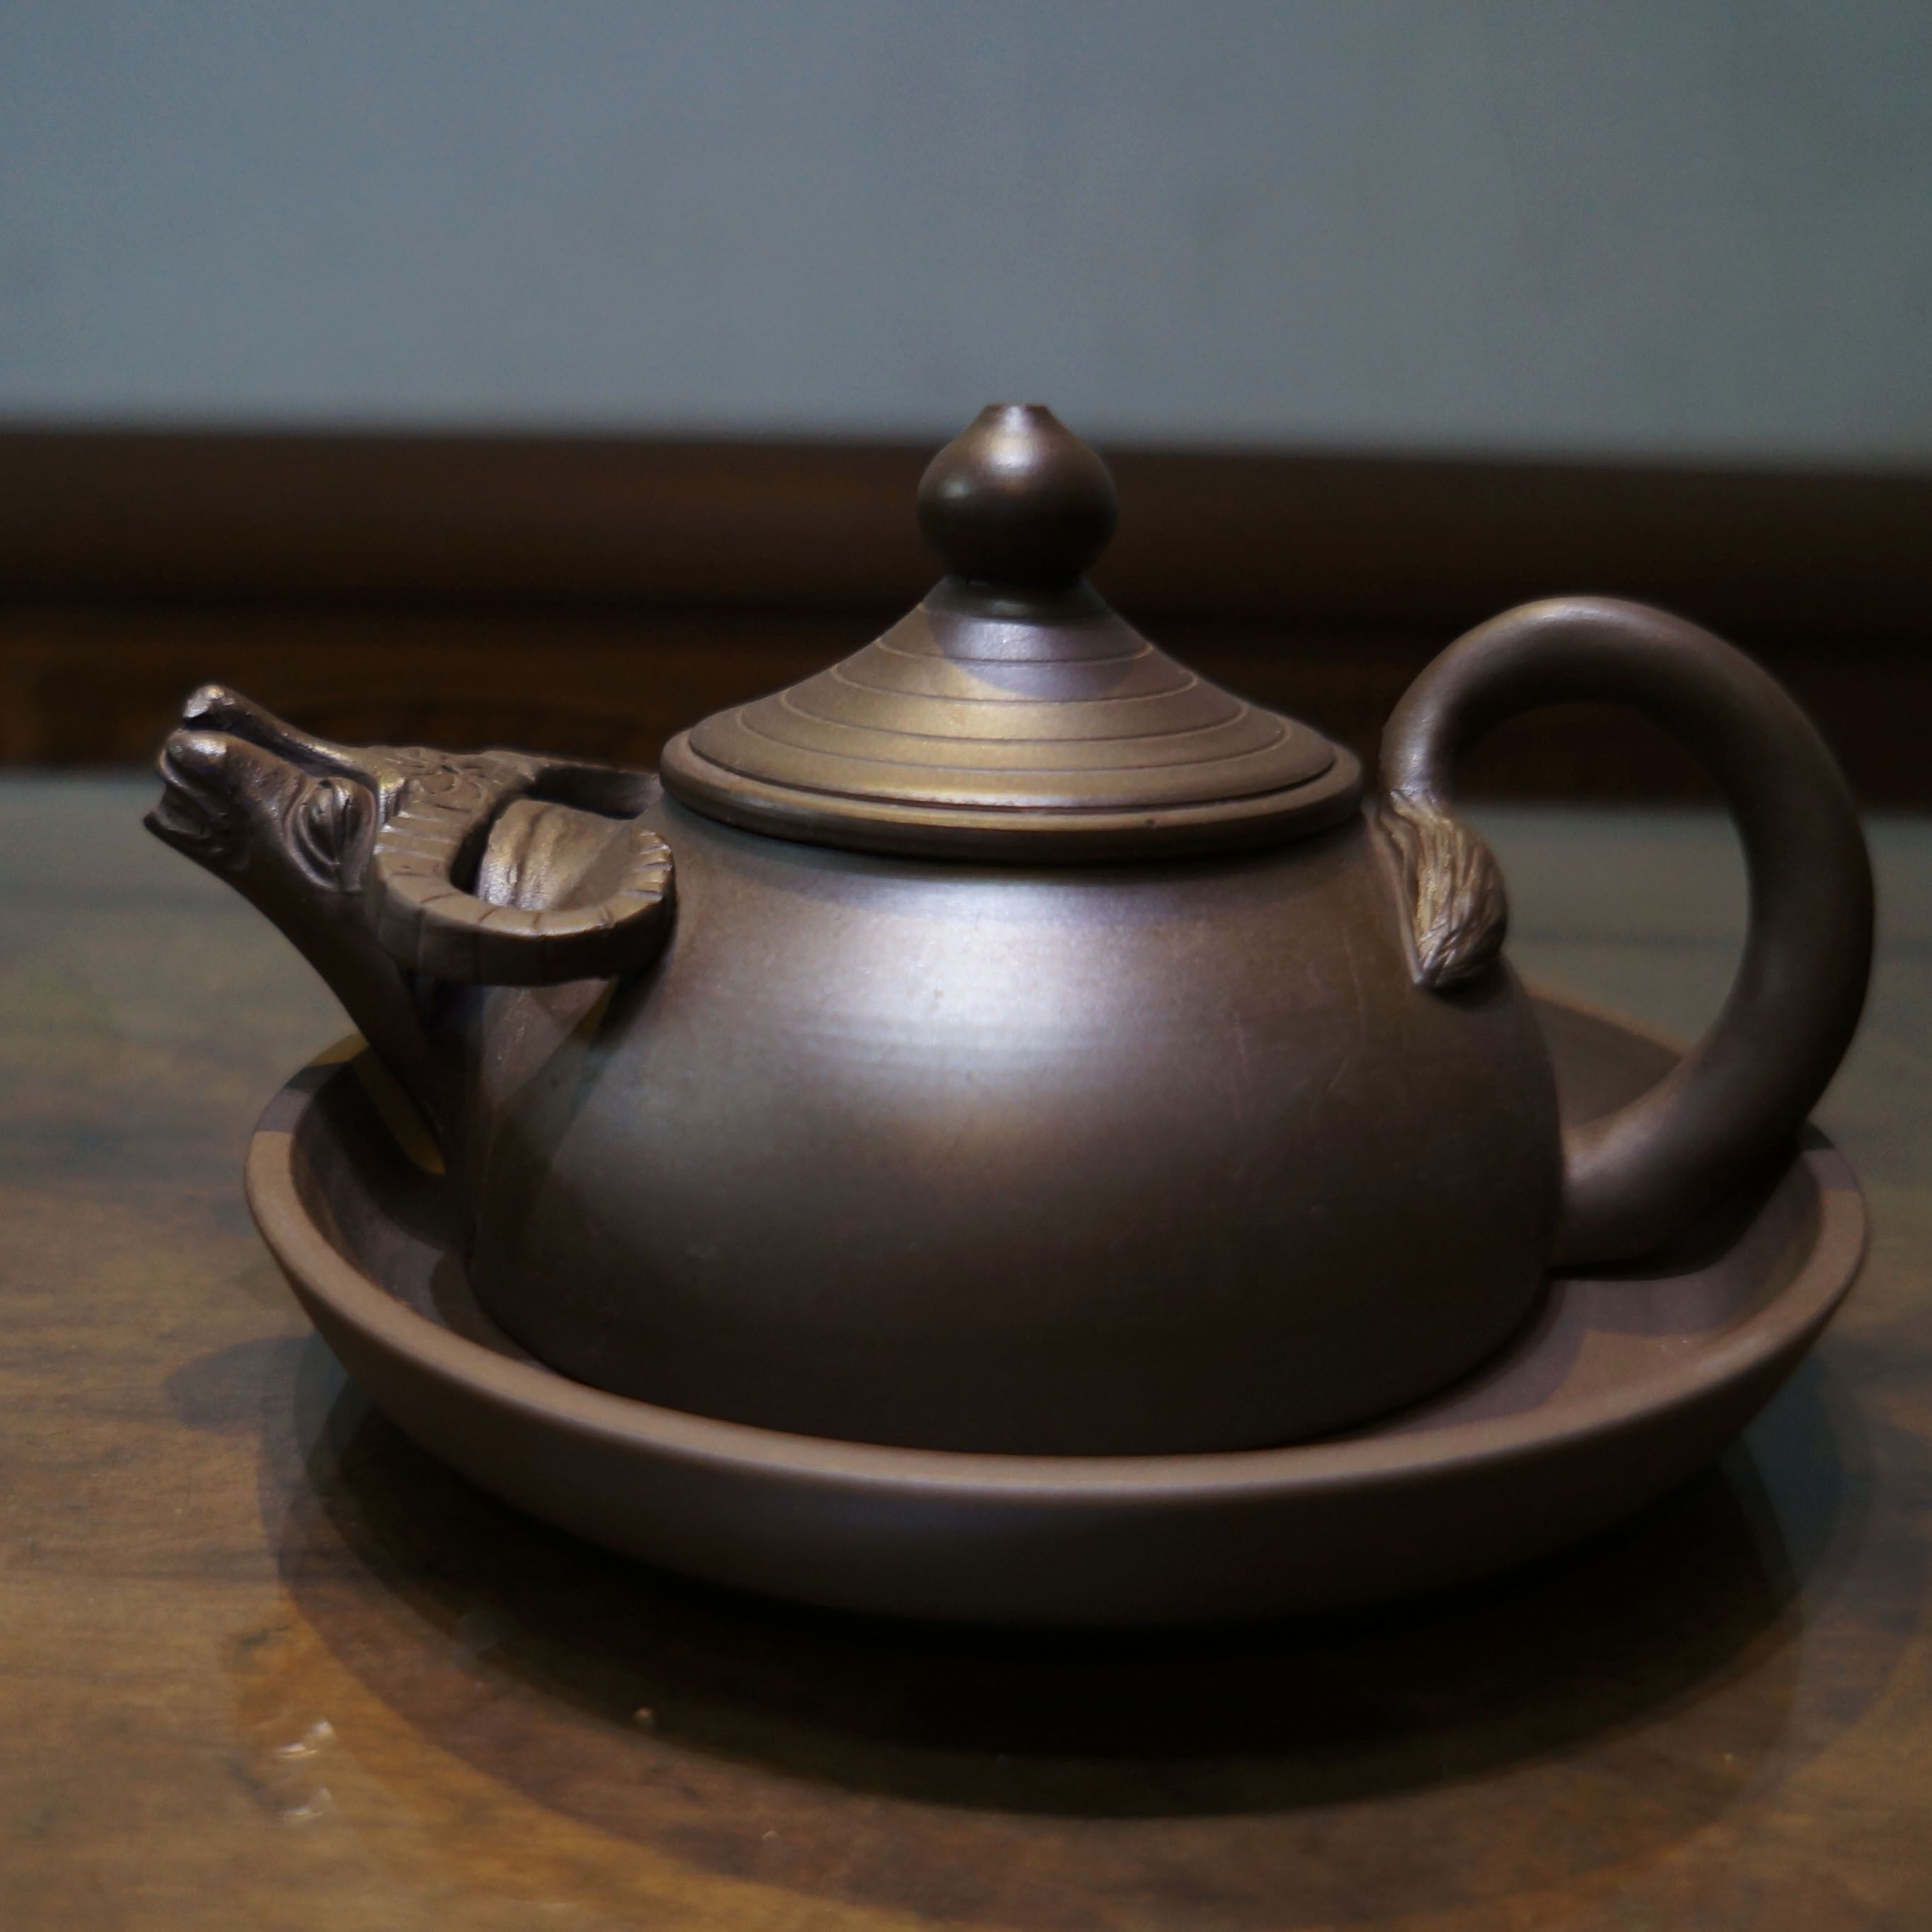 Making Tea In A Teapot Ấm Trà Trâu Vietnamese Hand Made Tea Pot Bat Trang